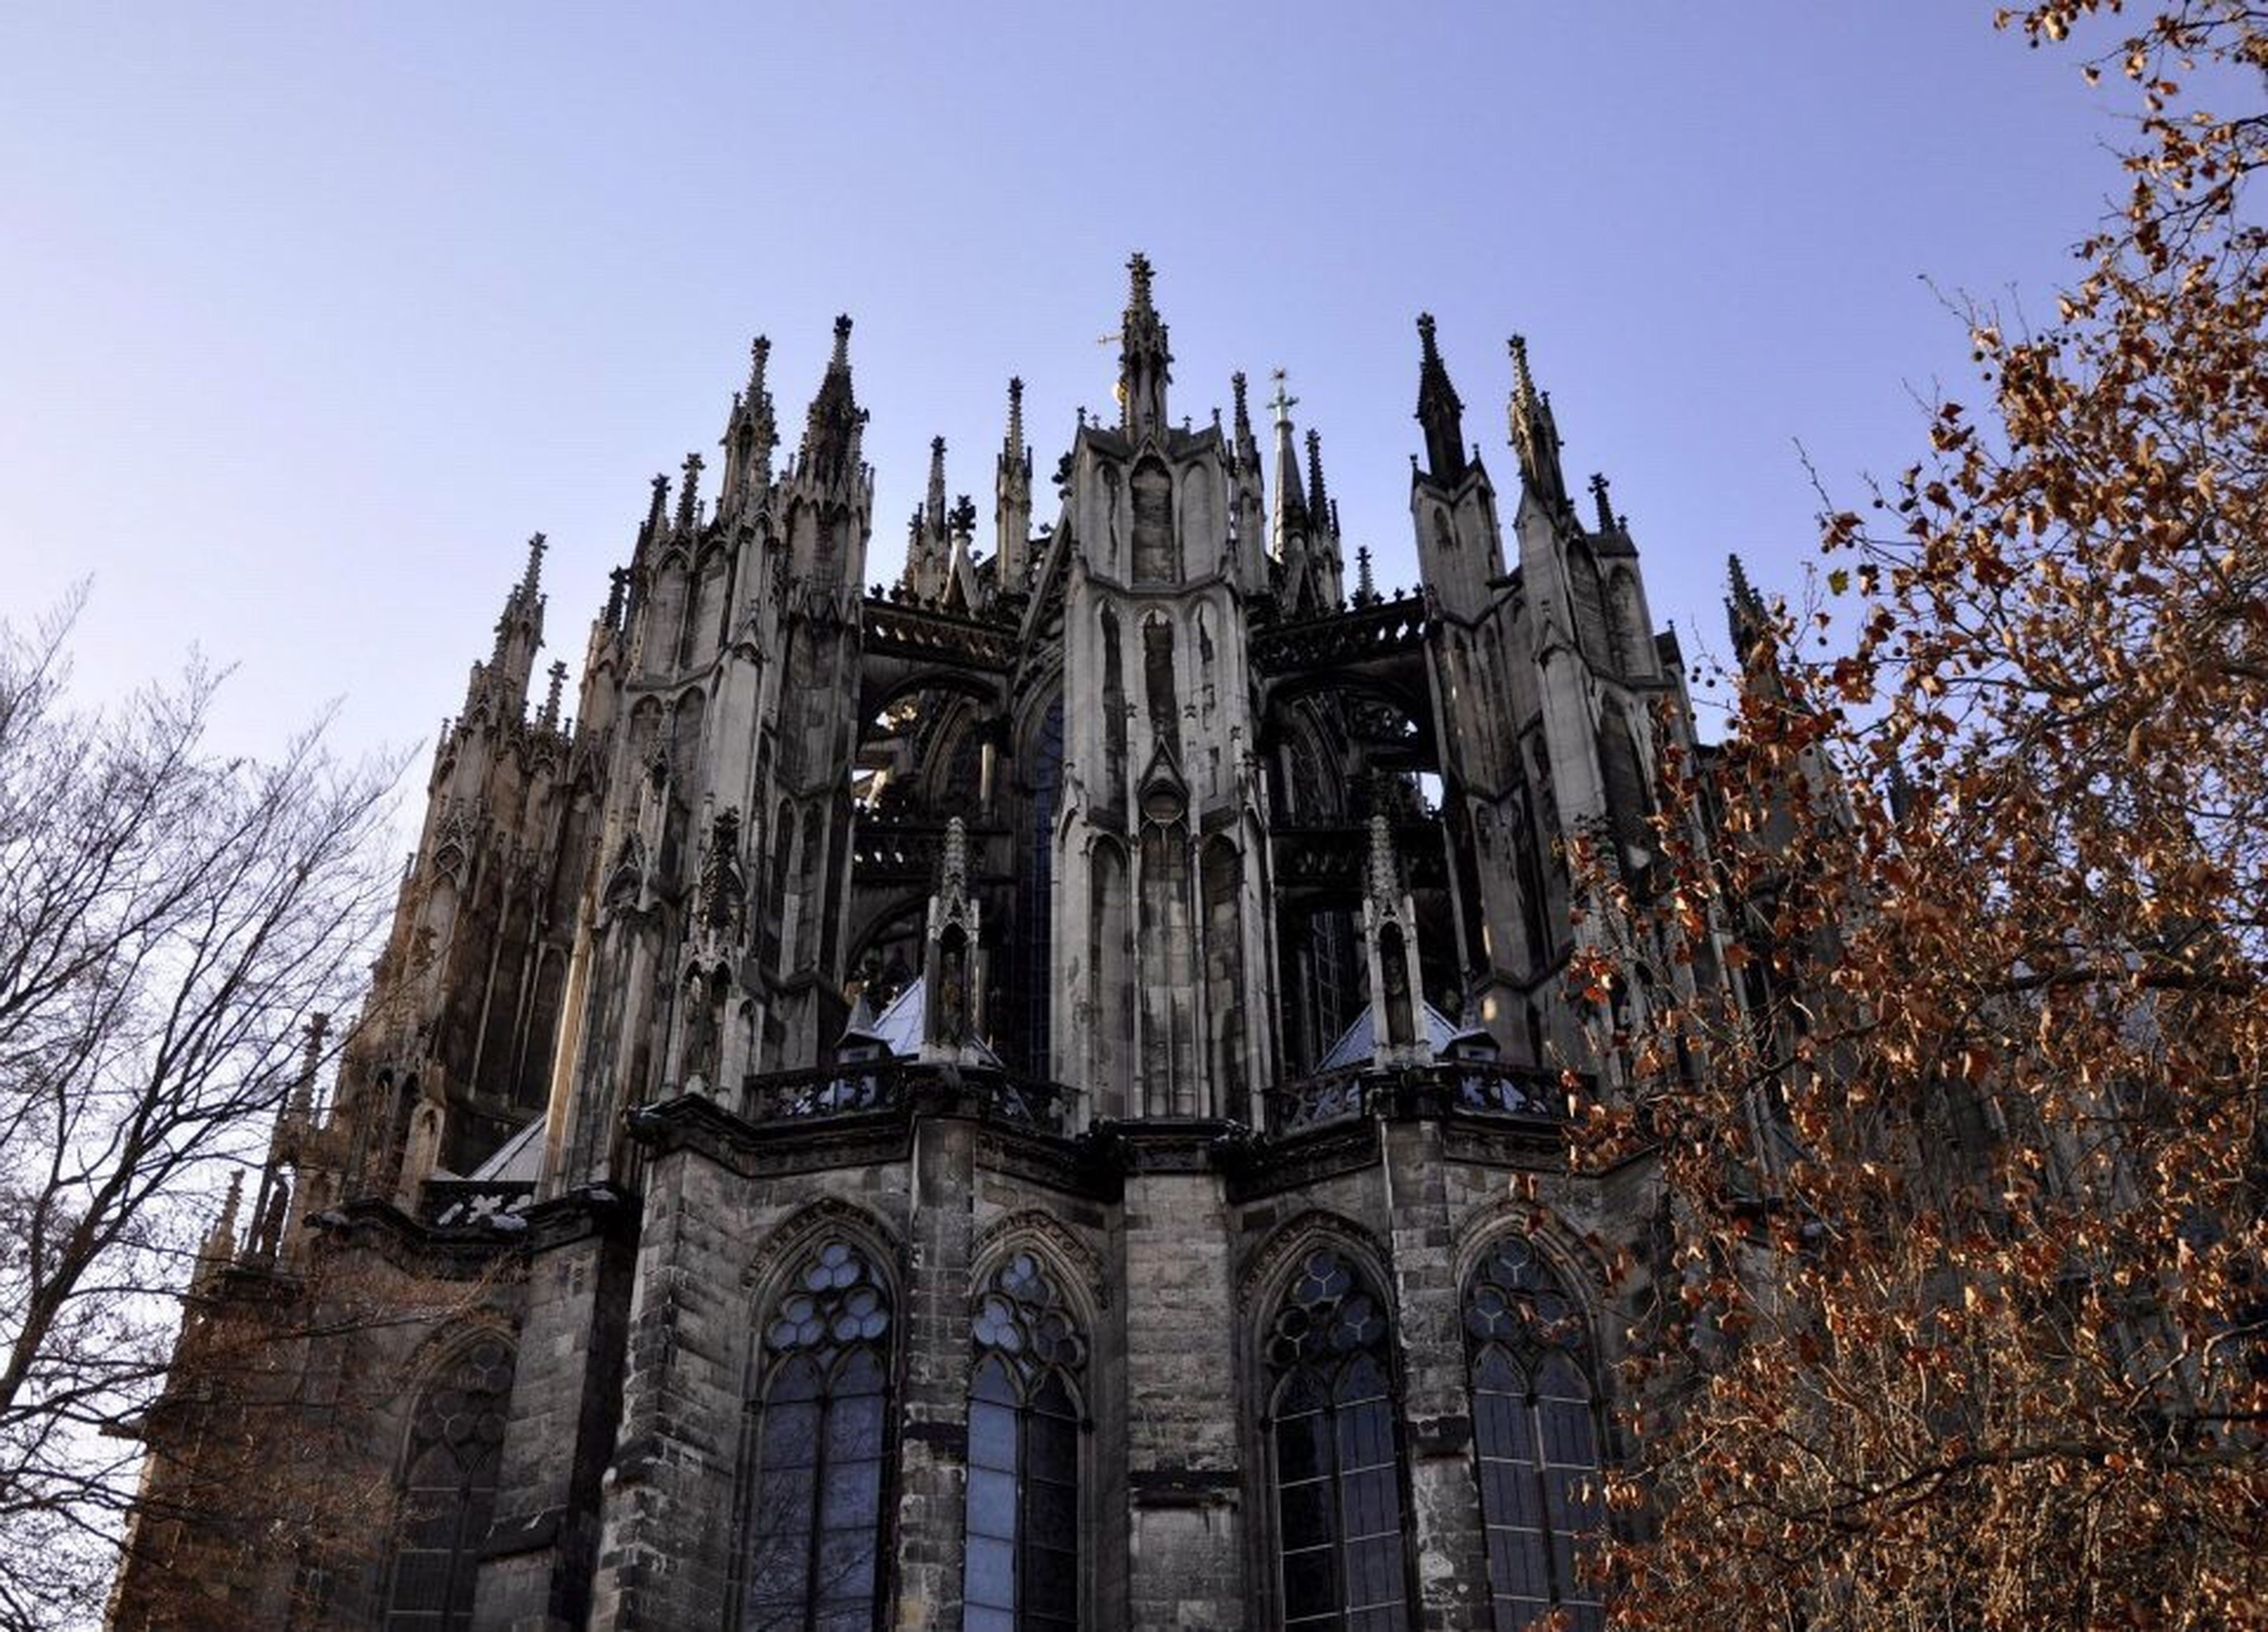 religion, church, spirituality, architecture, place of worship, built structure, building exterior, low angle view, cathedral, sculpture, clear sky, spire, architectural feature, steeple, outdoors, history, milan cathedral, gothic style, sky, arch, high section, facade, culture, famous place, day, notre dame de paris, duomo di milano, gothic